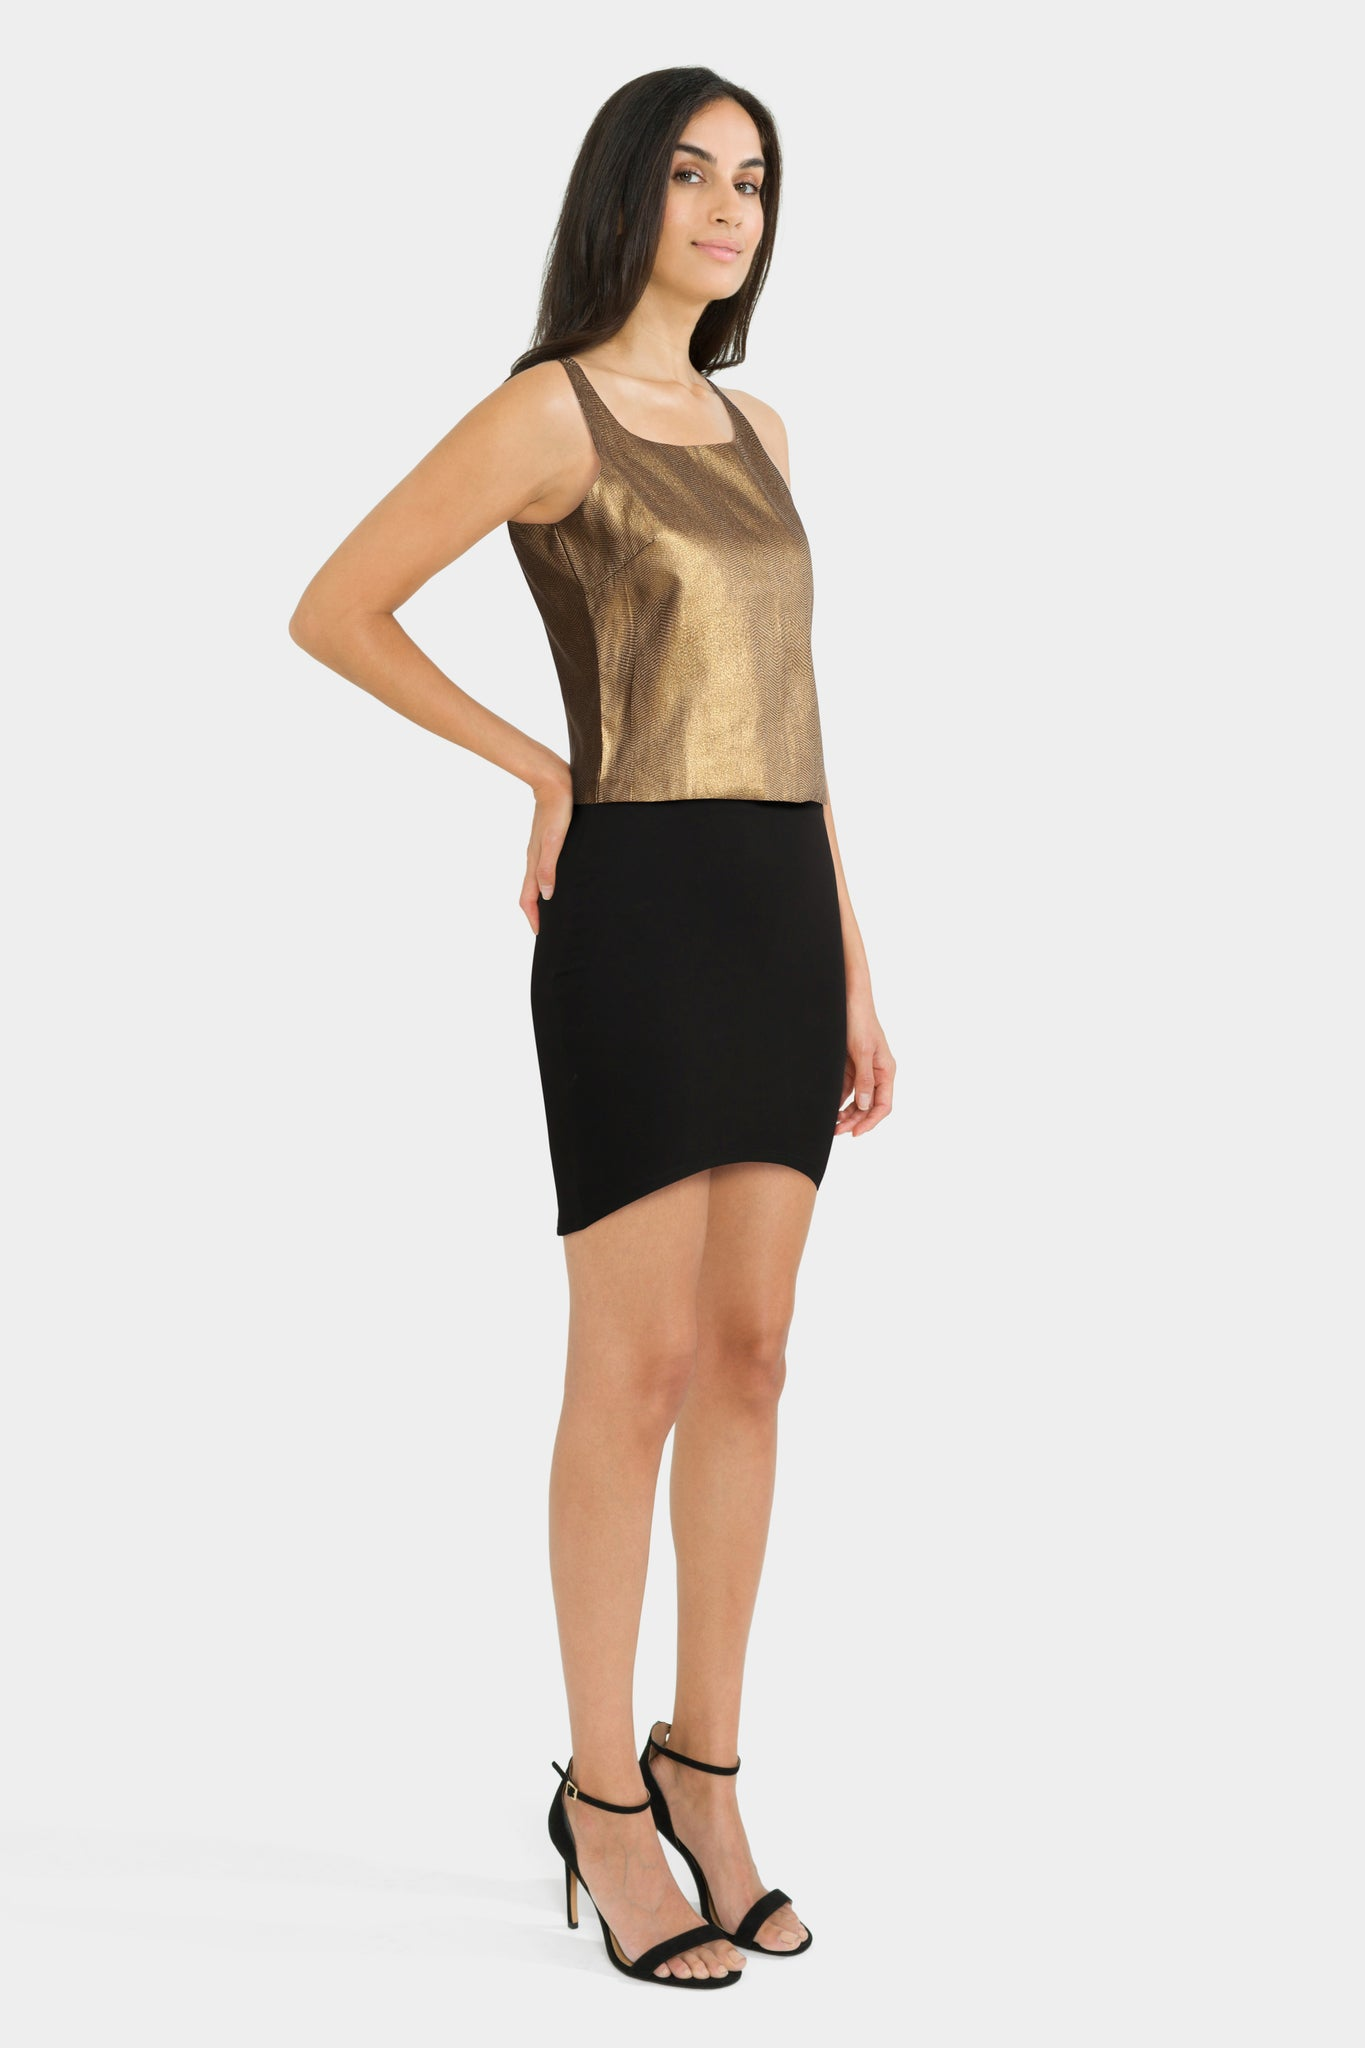 Gold Top With Black Bodycon Skirt